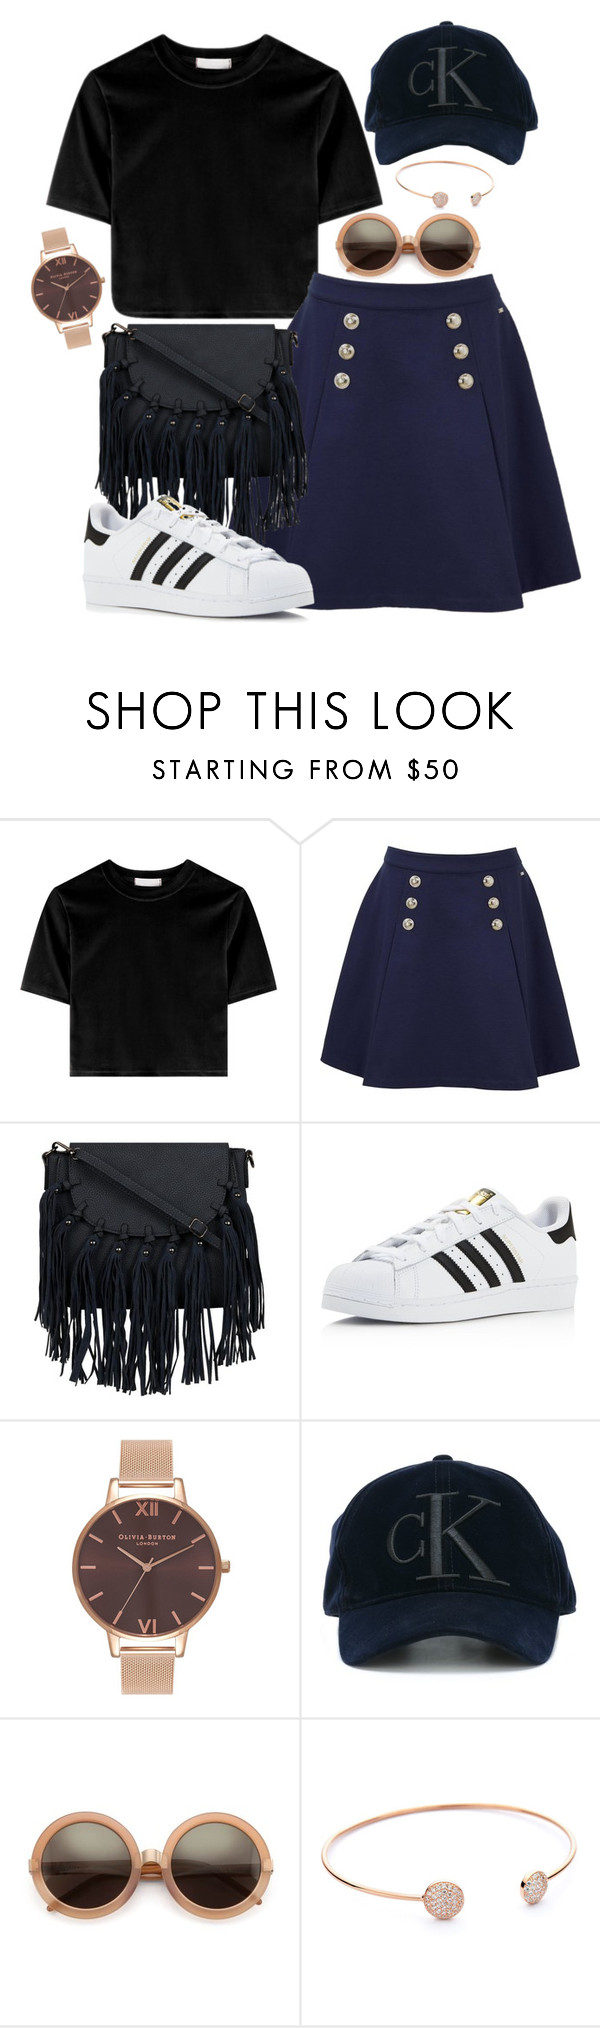 """""""Casual"""" by stephlv ❤ liked on Polyvore featuring Tommy Hilfiger, adidas, Olivia Burton, Calvin Klein Jeans and Wildfox"""